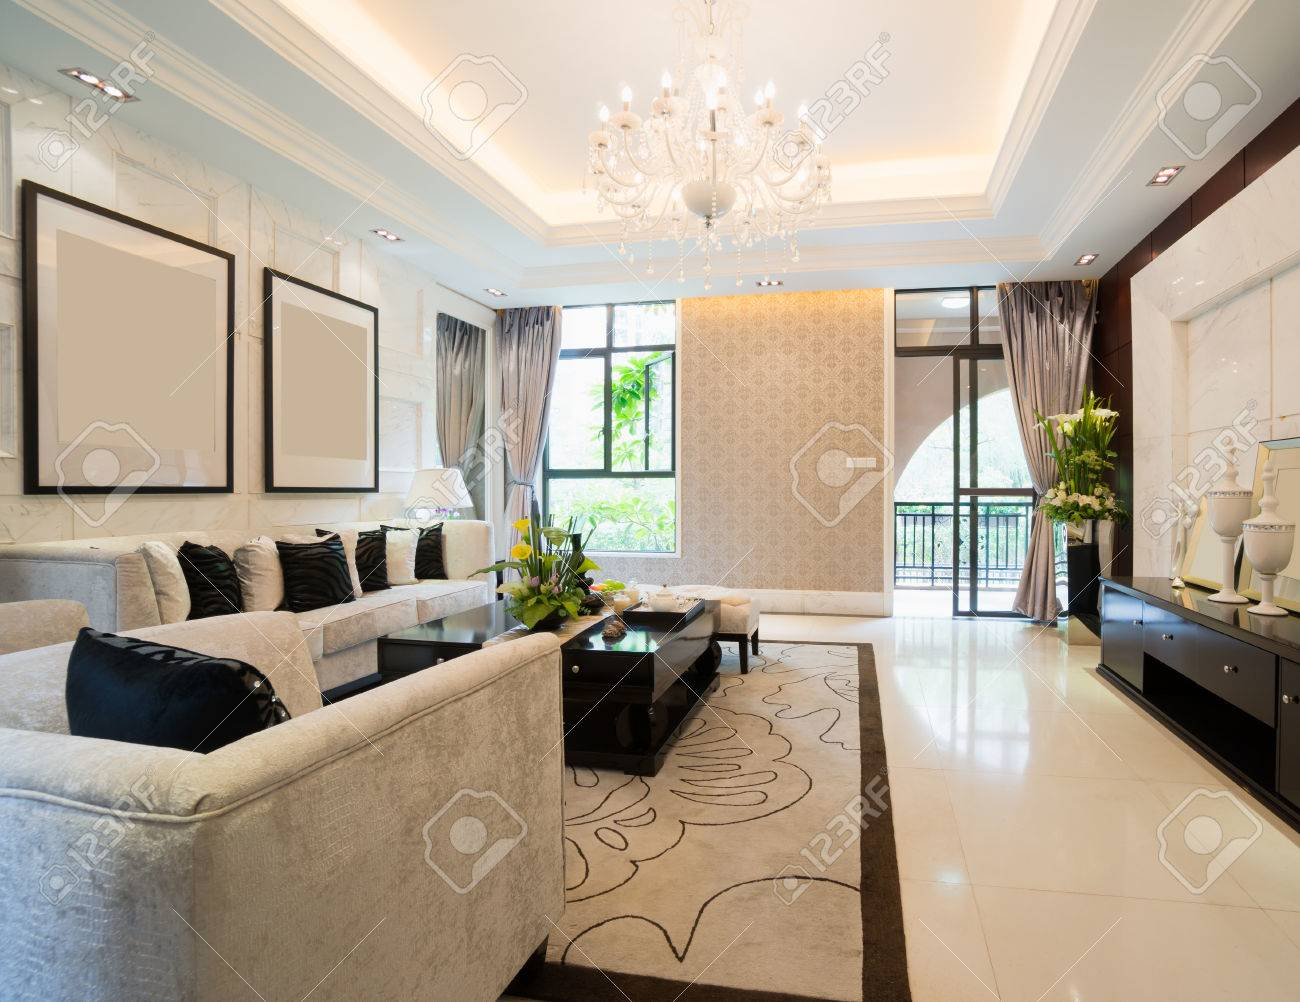 Luxury Living Room With Nice Decoration Stock Photo, Picture And ...